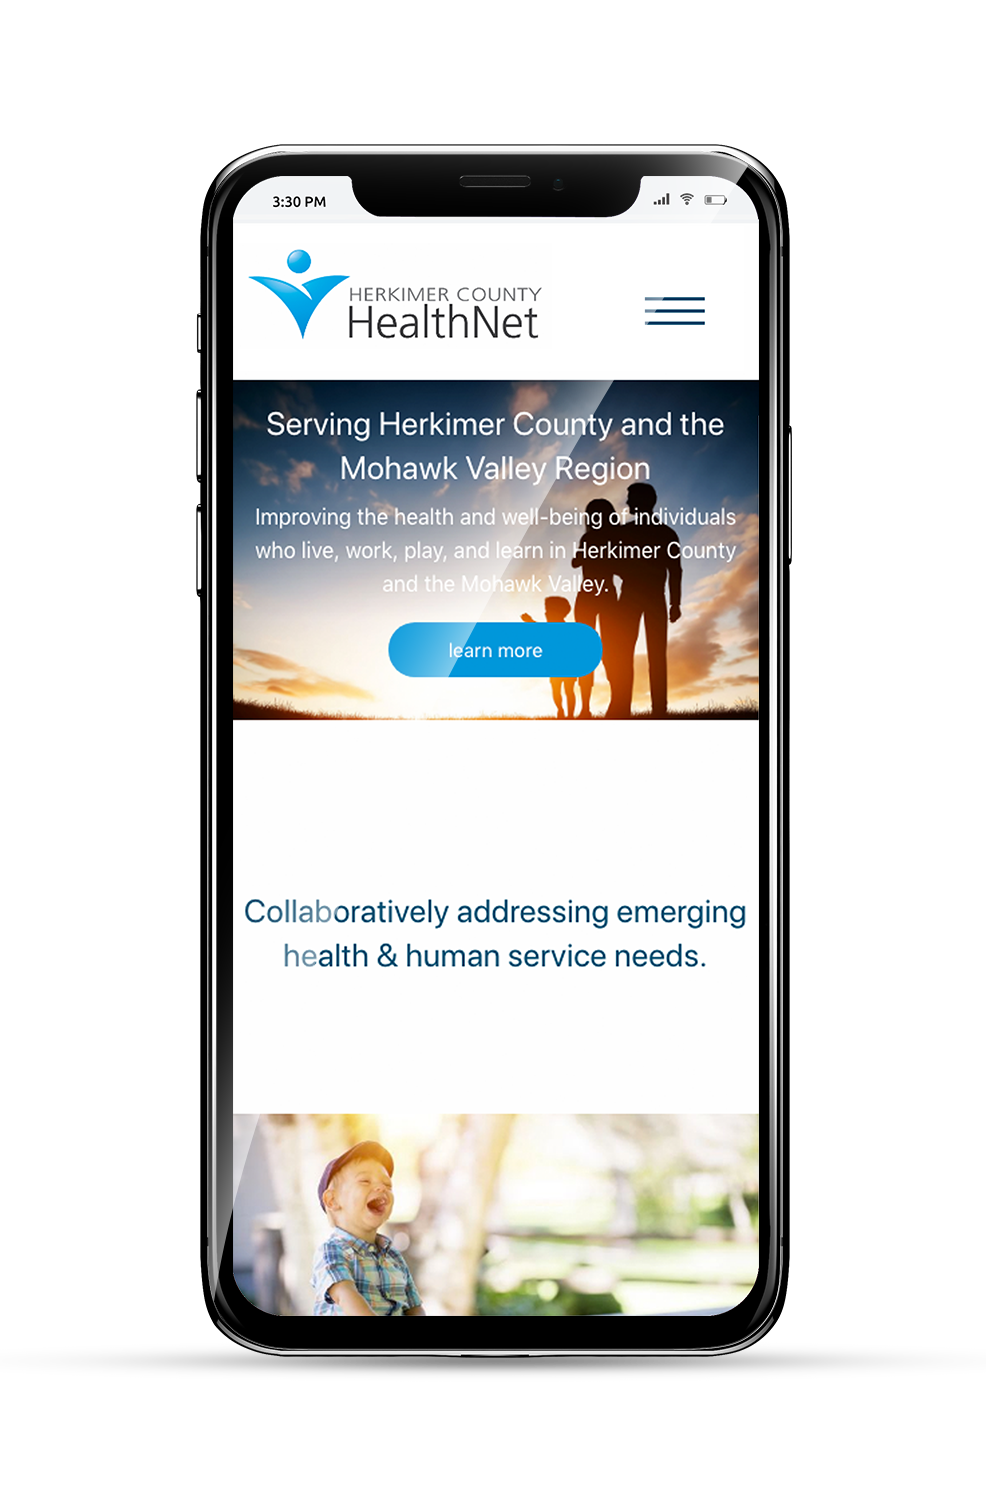 Herkimer County HealthNet Mobile Homepage